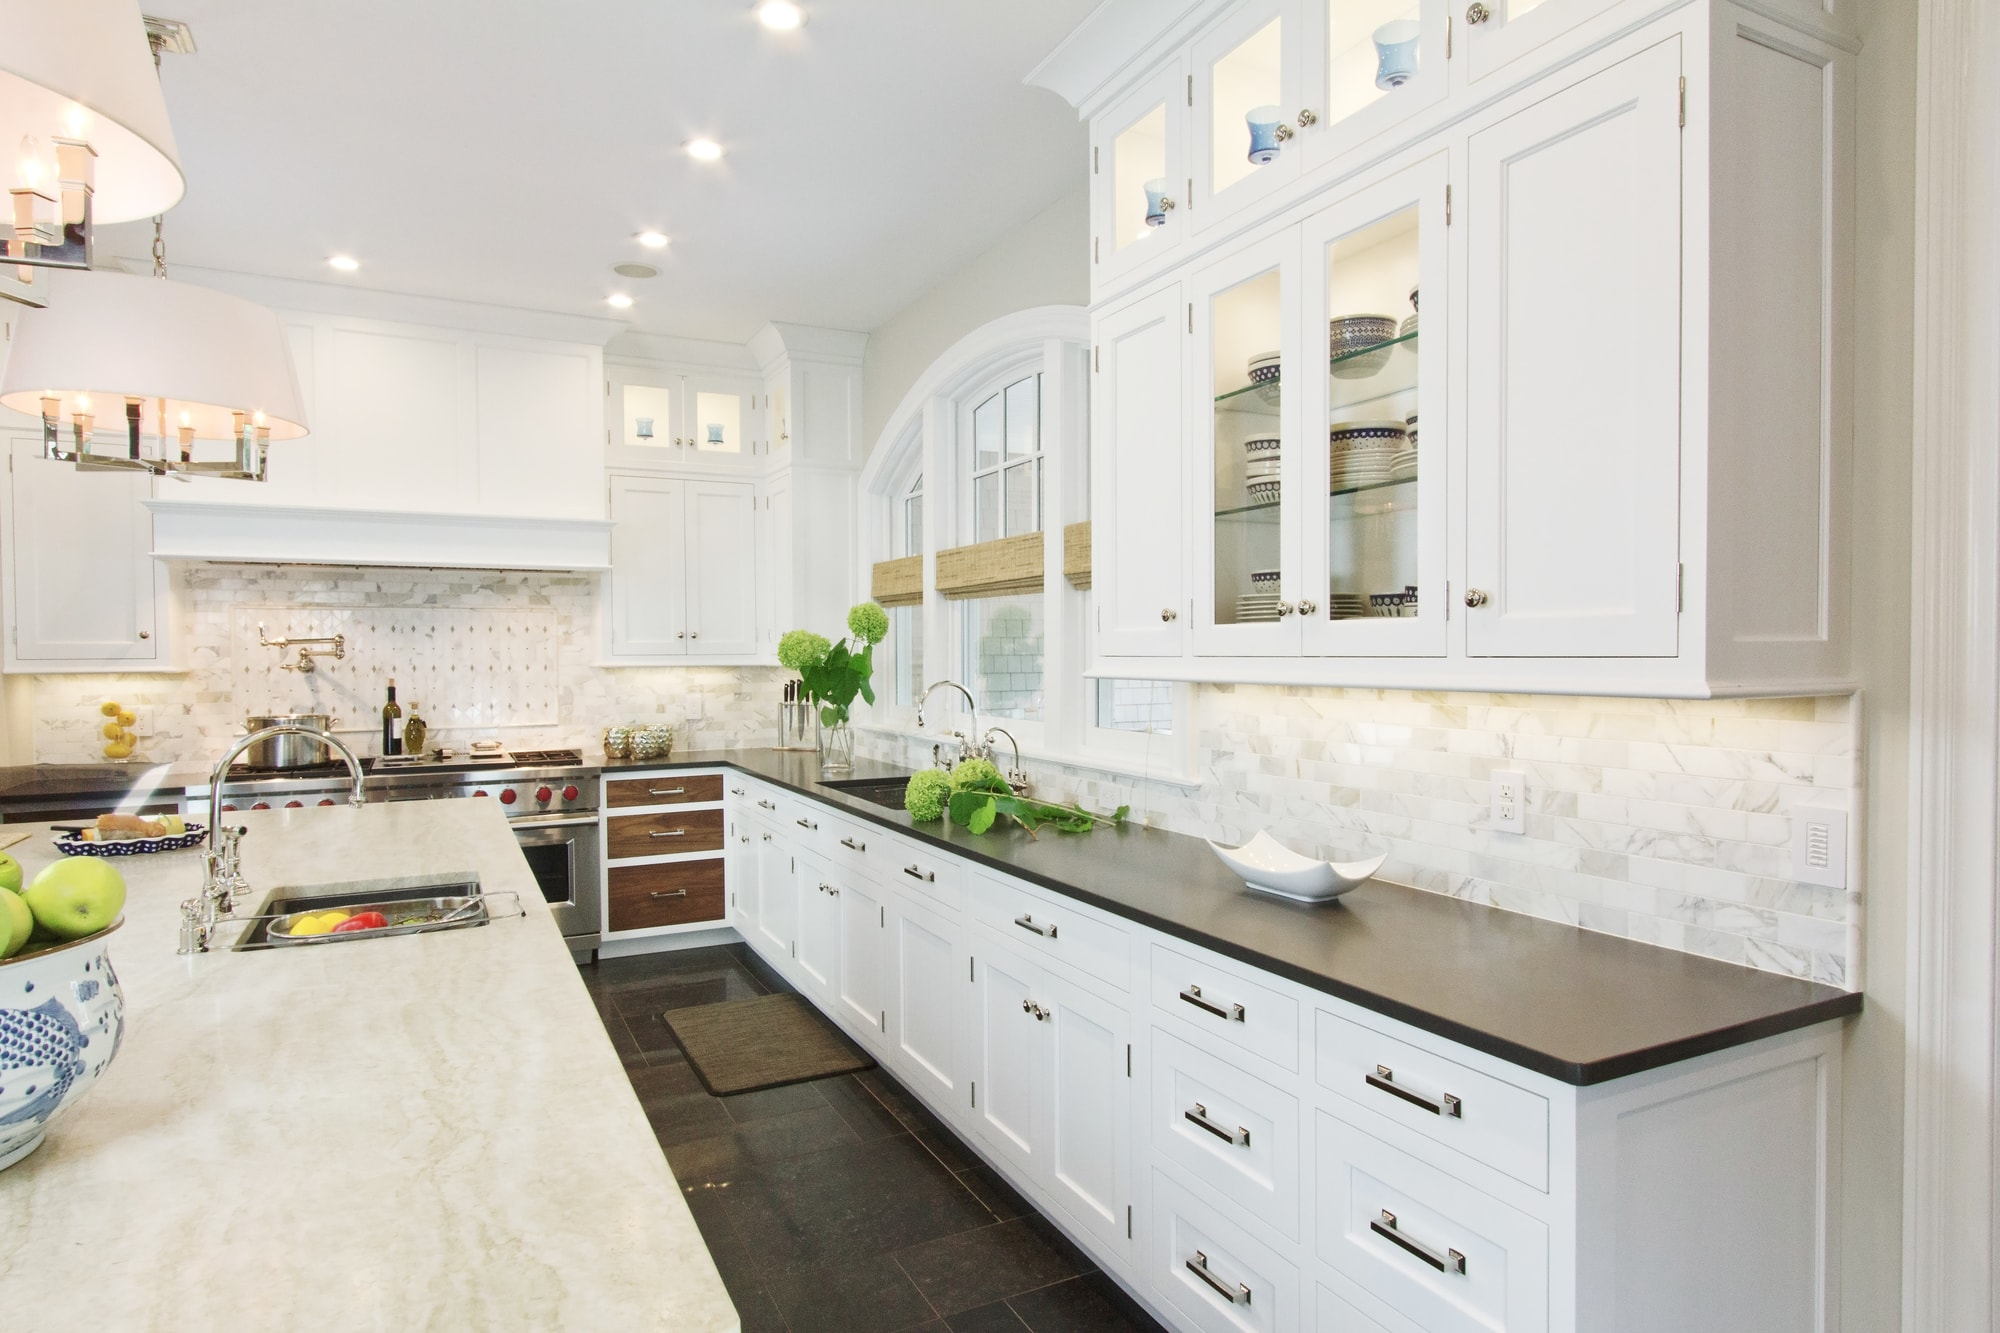 Transitional style kitchen with upper cabinets and plenty of drawers